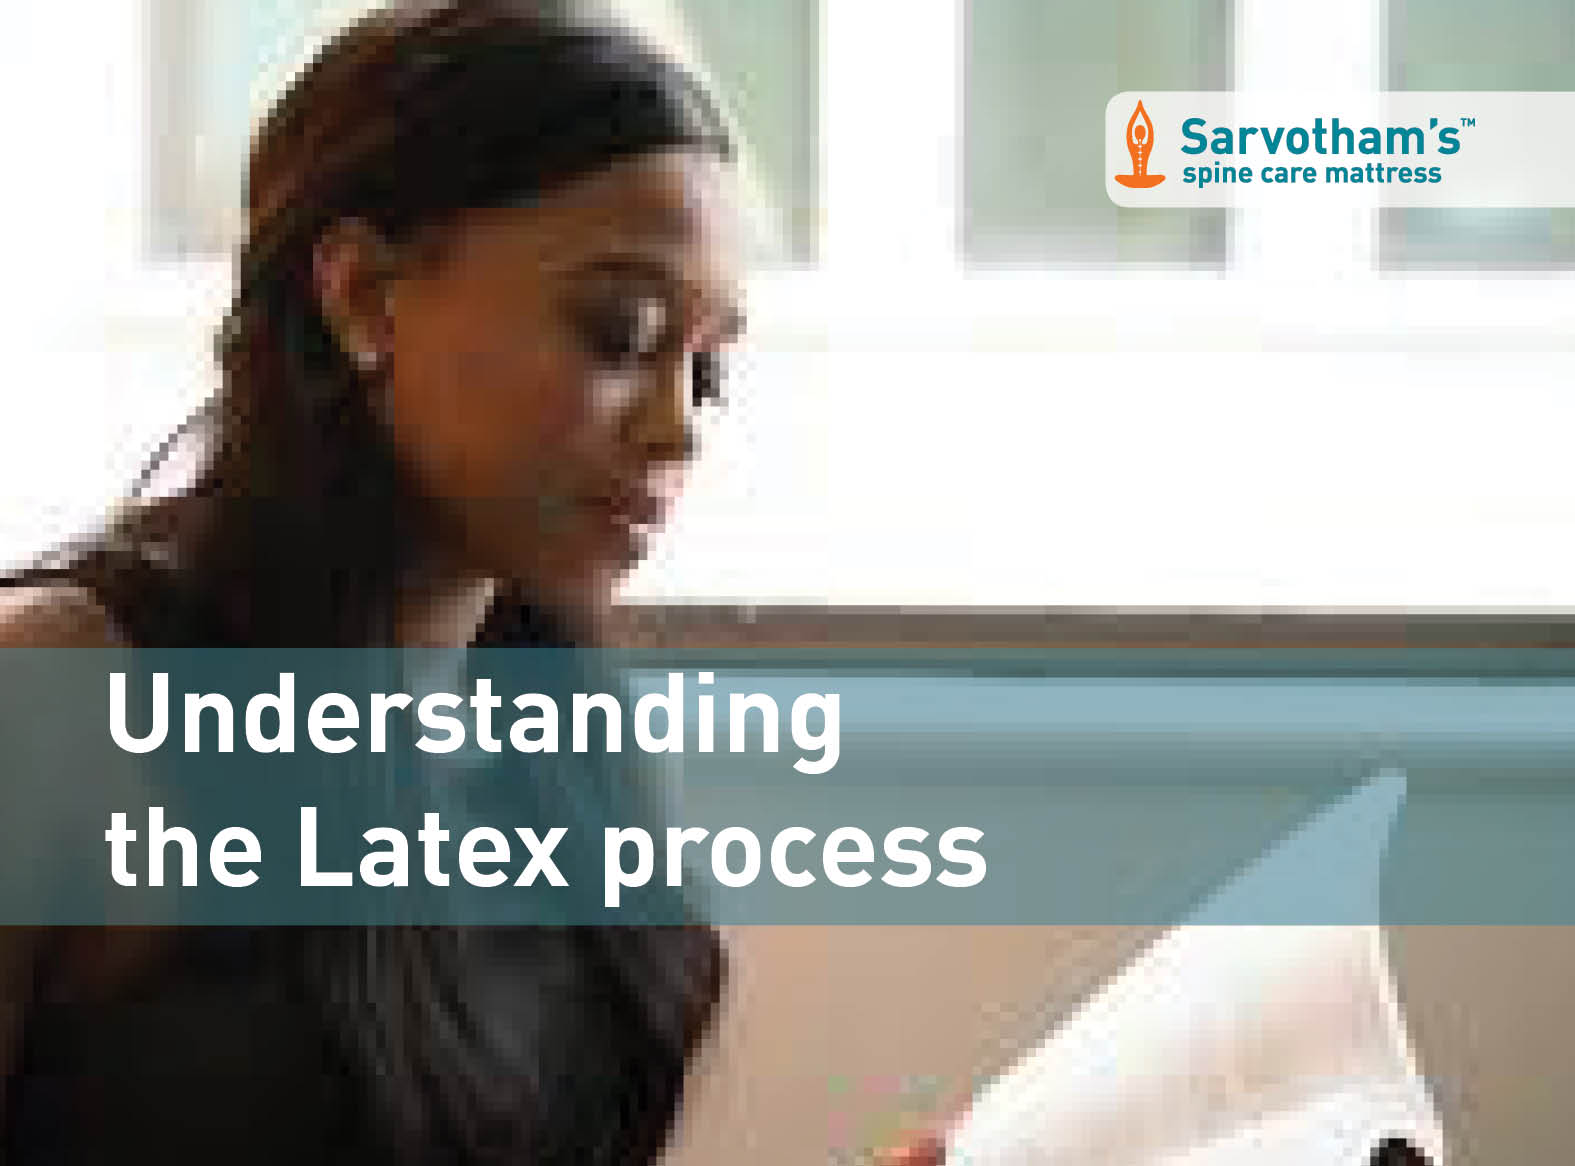 Understanding the Latex process